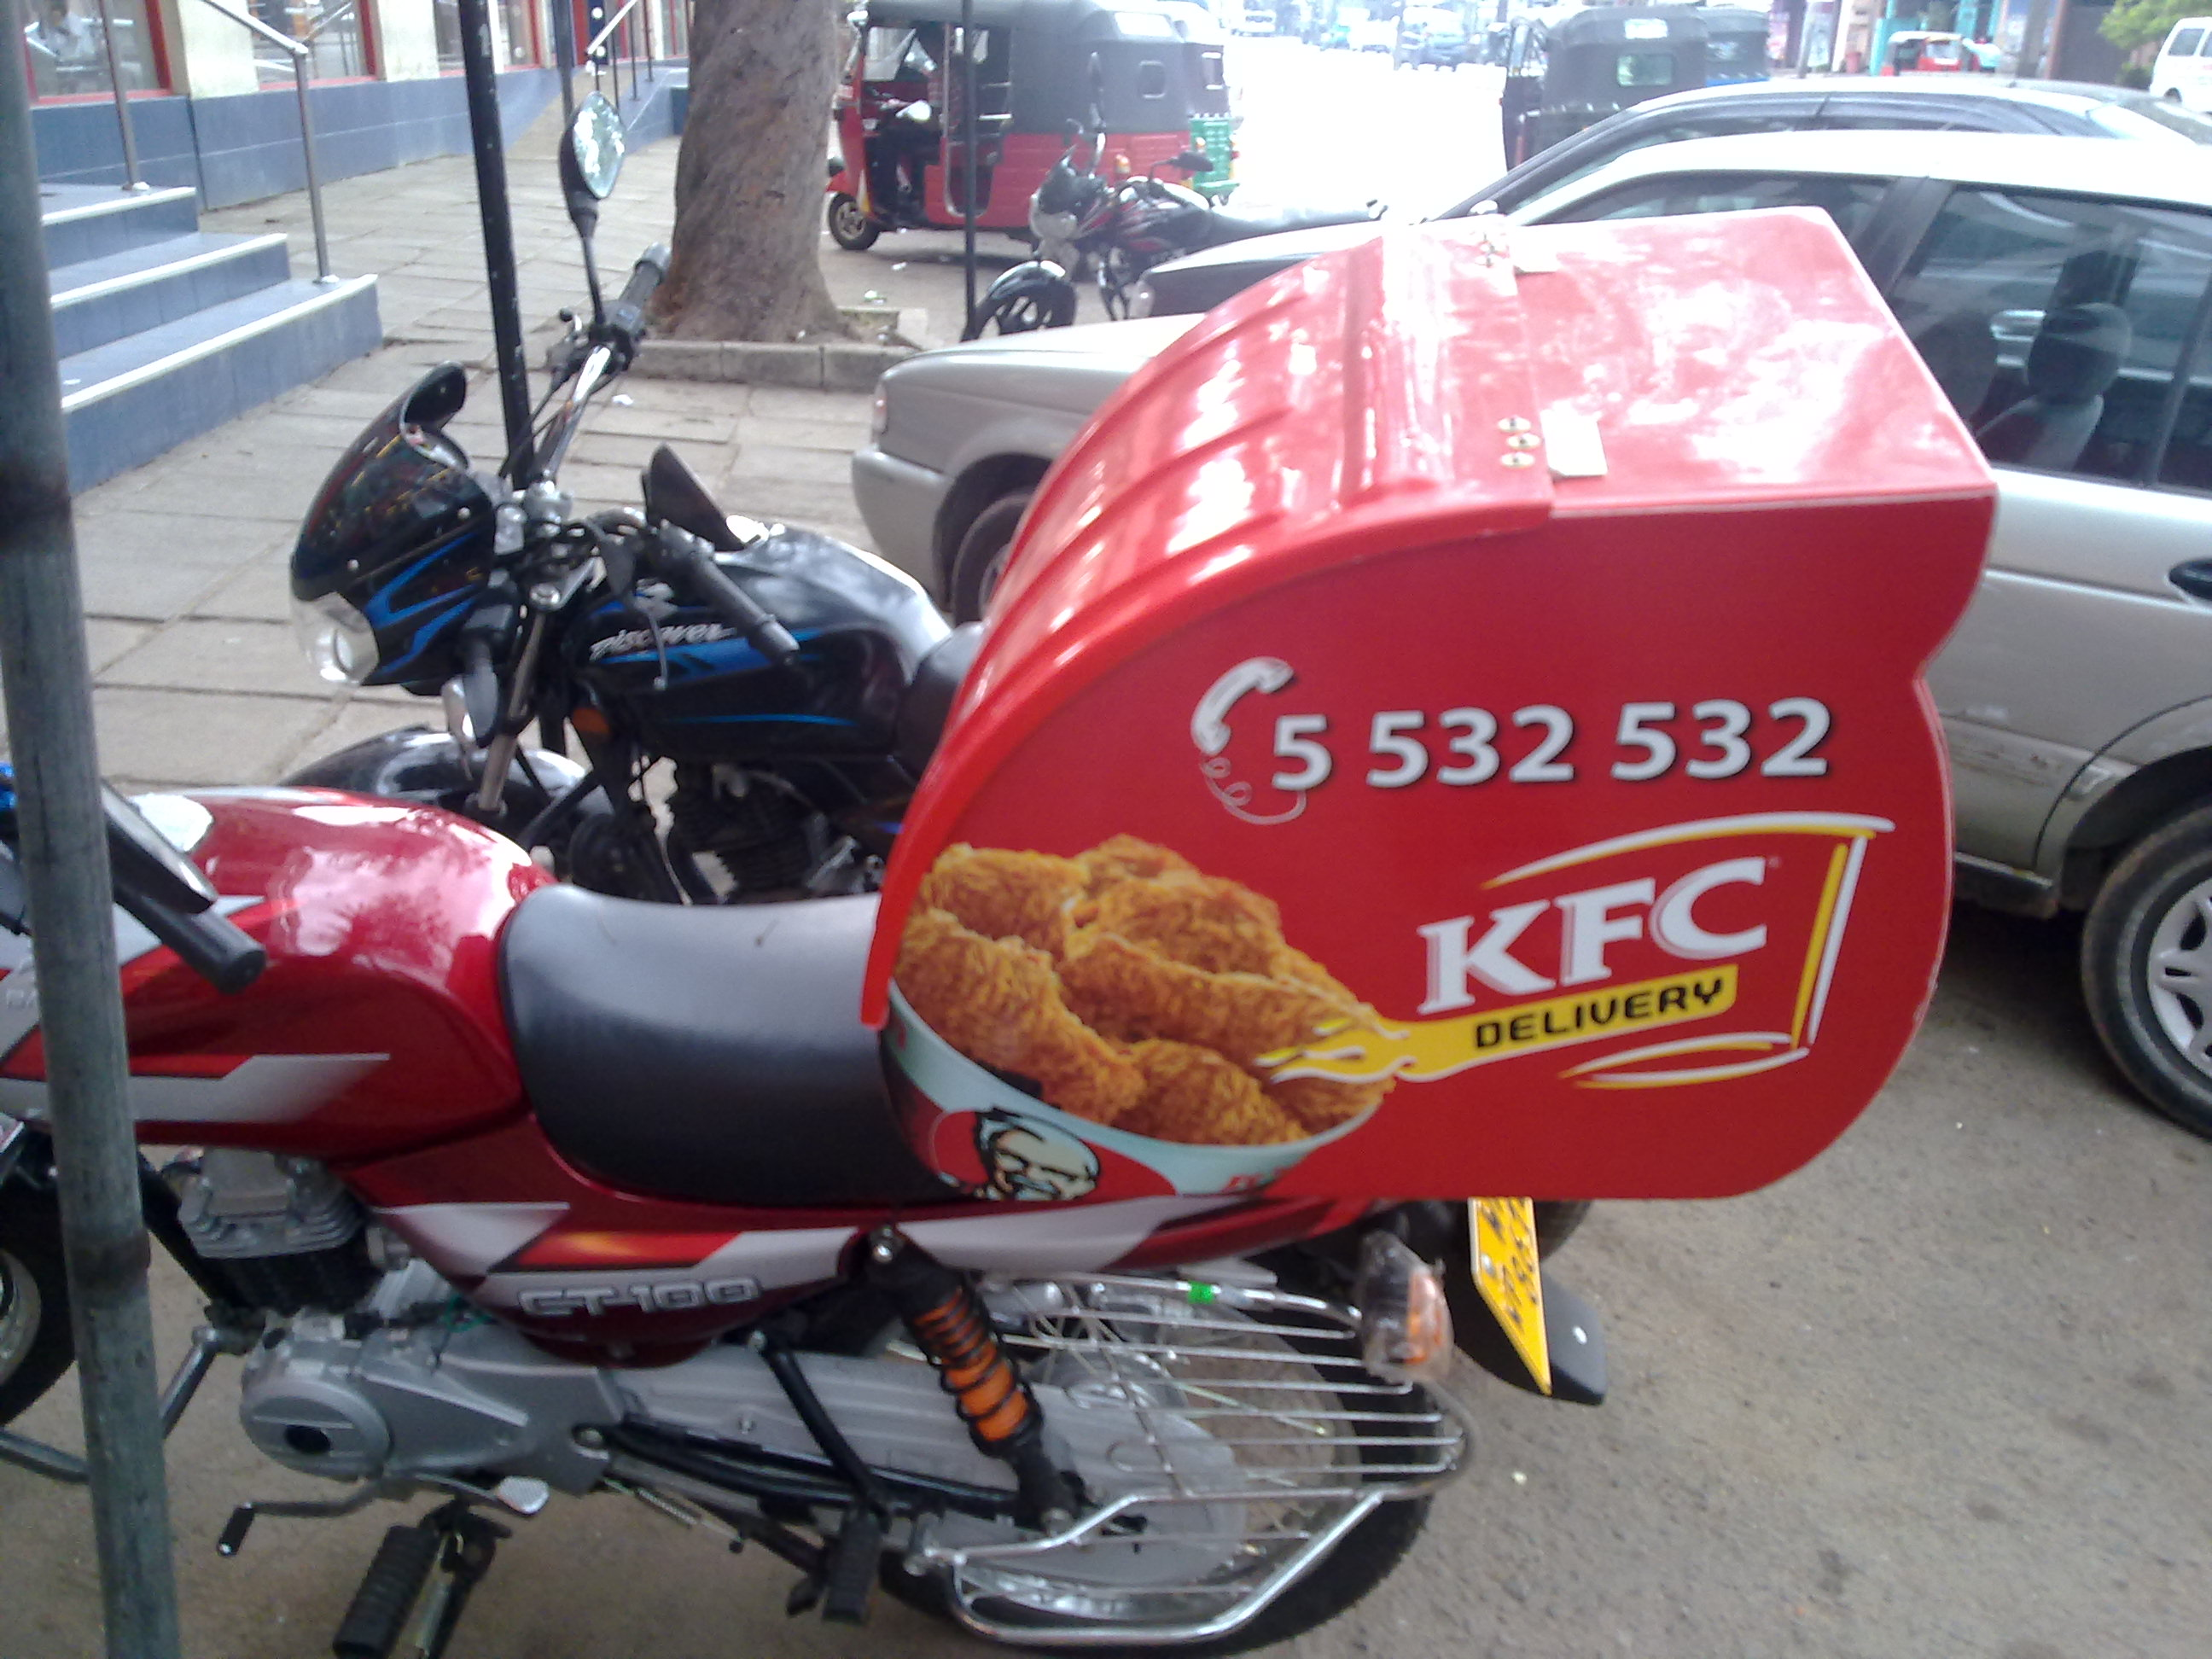 KFC Introduce Home delivery service in Srilanka « Synergyy.com